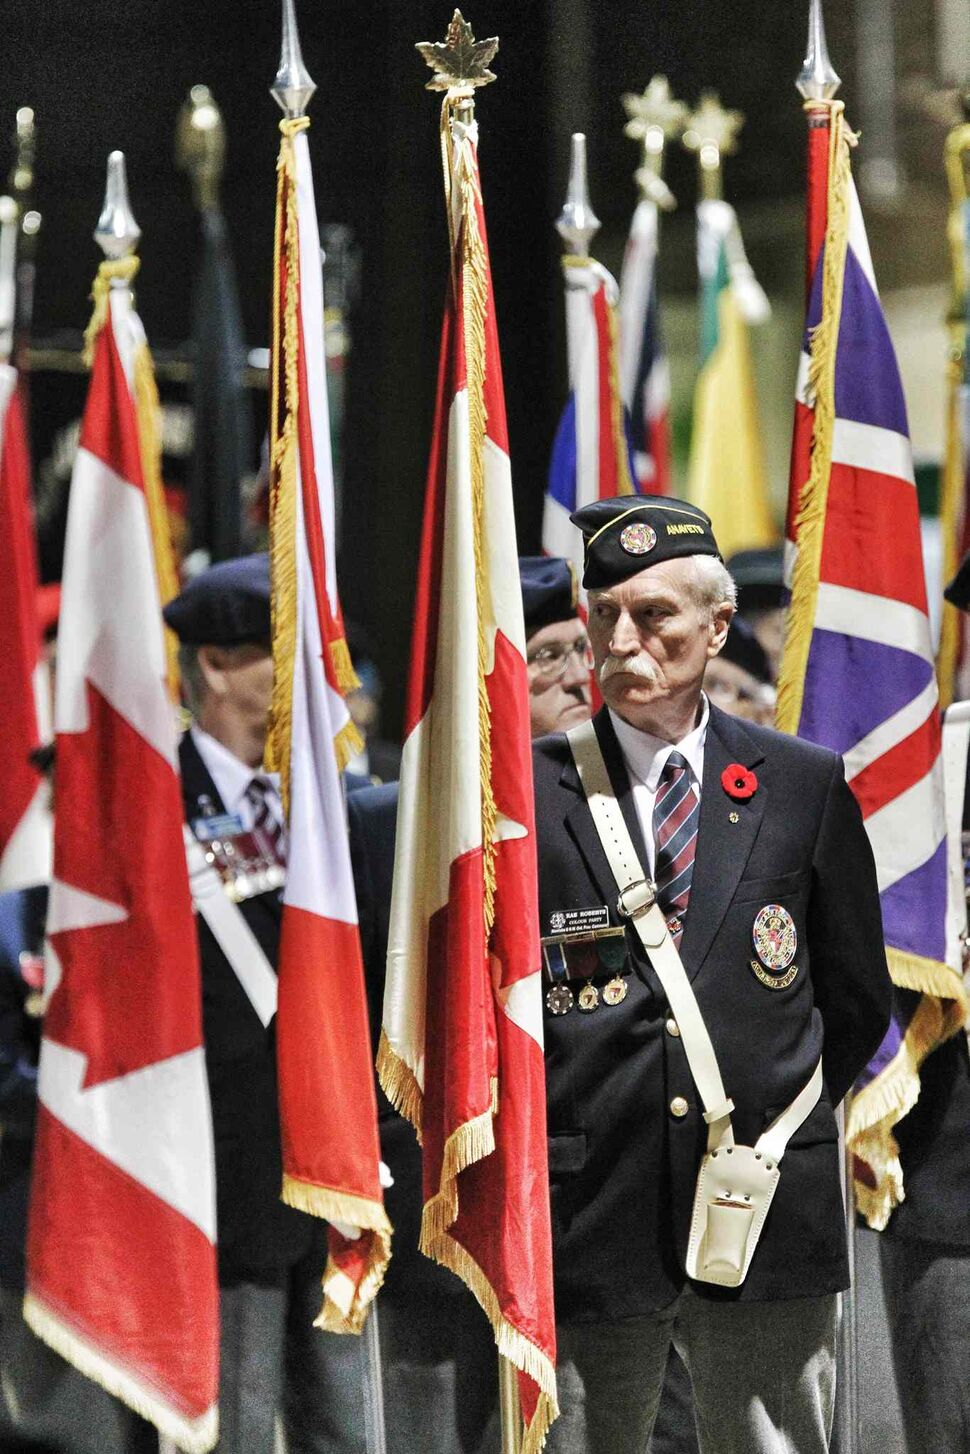 Rae Roberts of the Manitoba and Northwest Ontario Provincial Command Colour Party stands at the ready prior to the start of the Remembrance Day ceremony at the RBC Convention Winnipeg. (MIKE DEAL / WINNIPEG FREE PRESS)